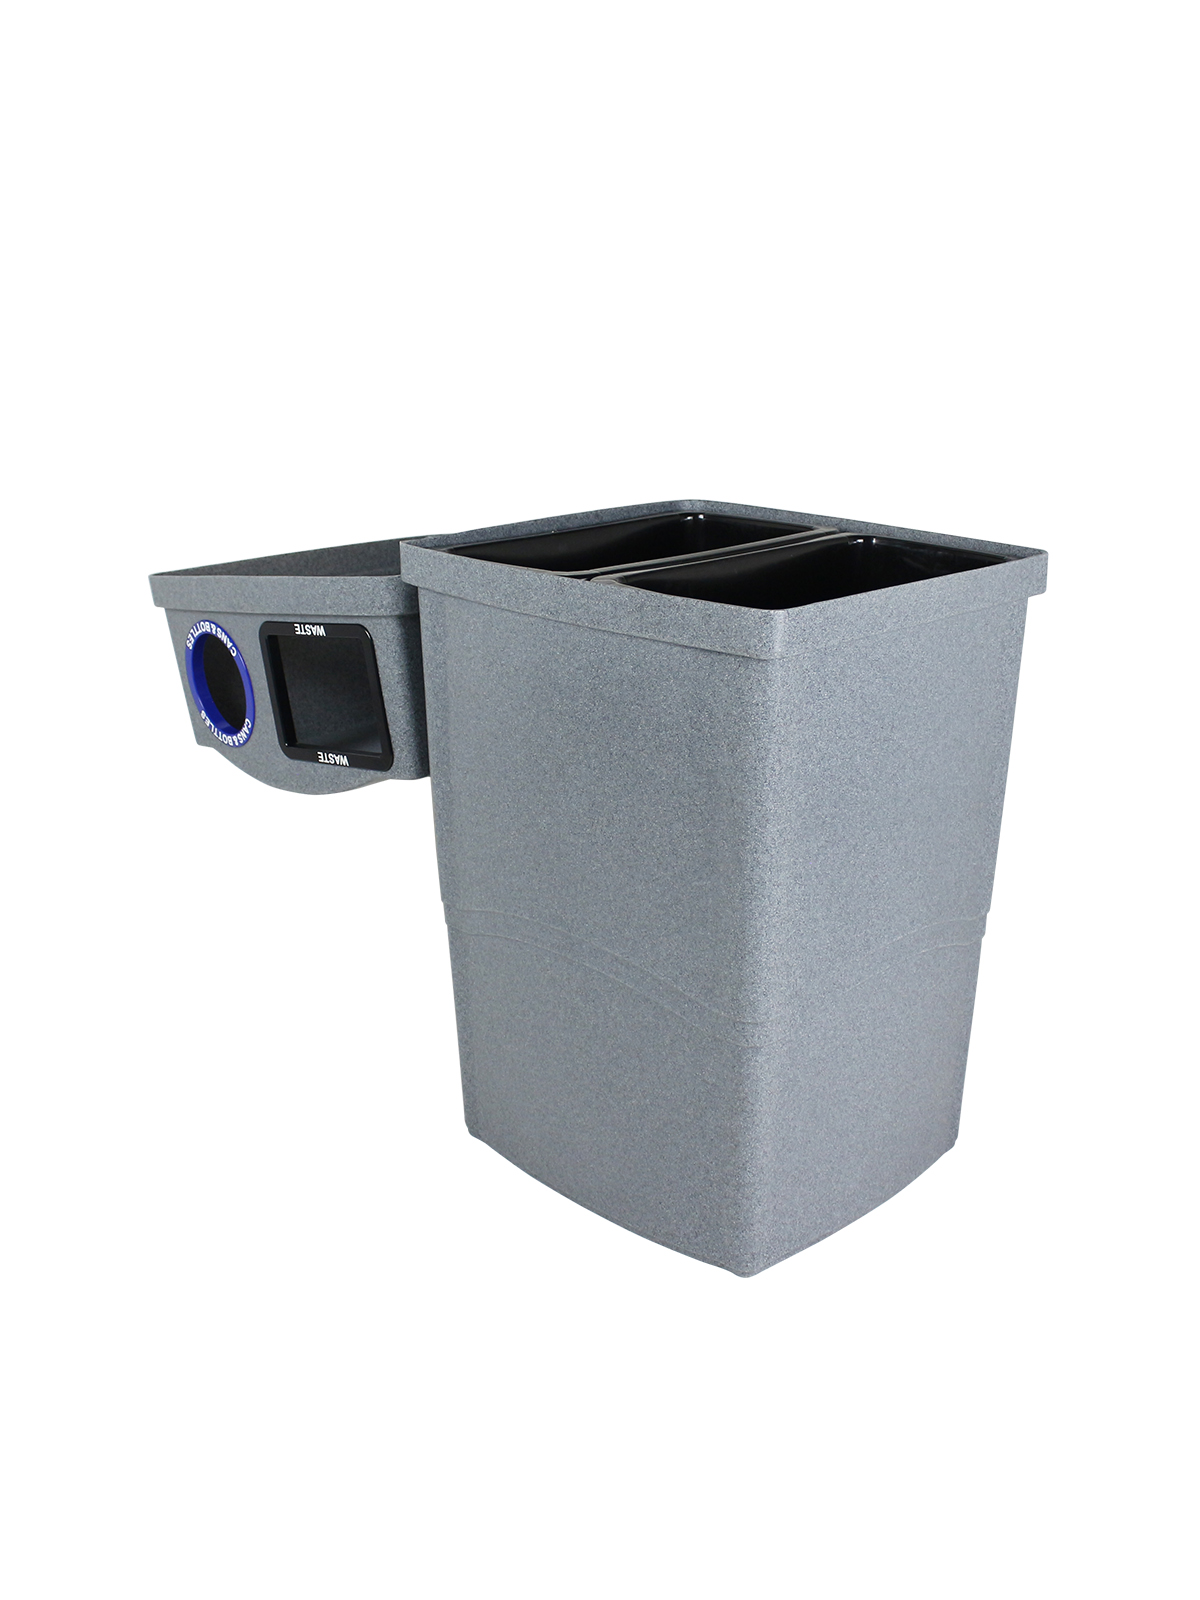 WAVE - Double - Indoor - Waste - Cans & Bottles - Full-Circle - Greystone